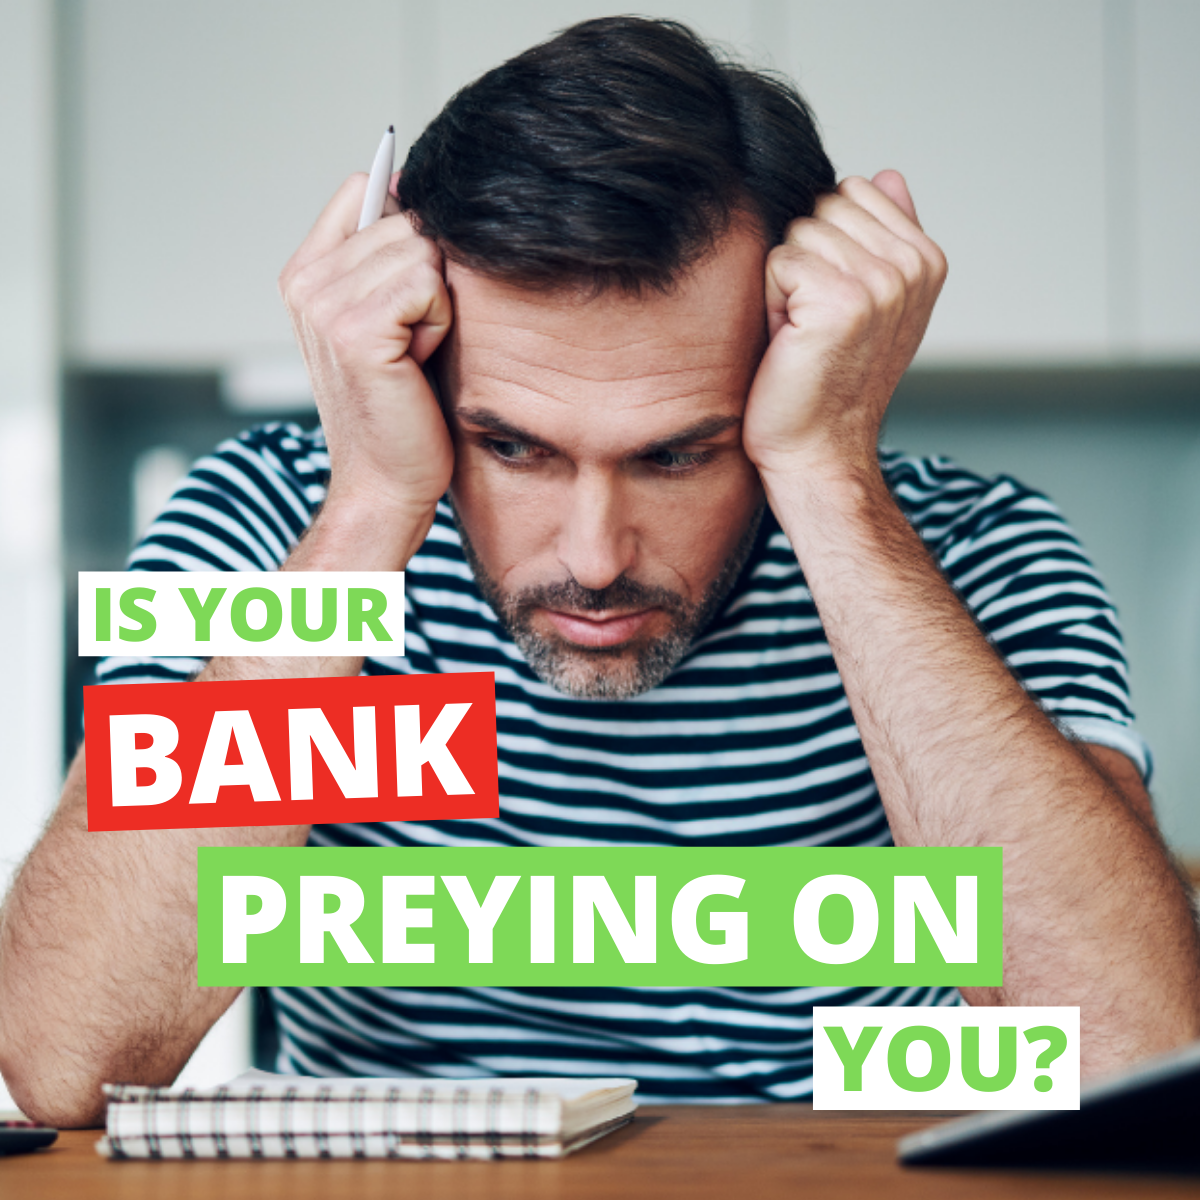 Is Your Bank Preying On You?